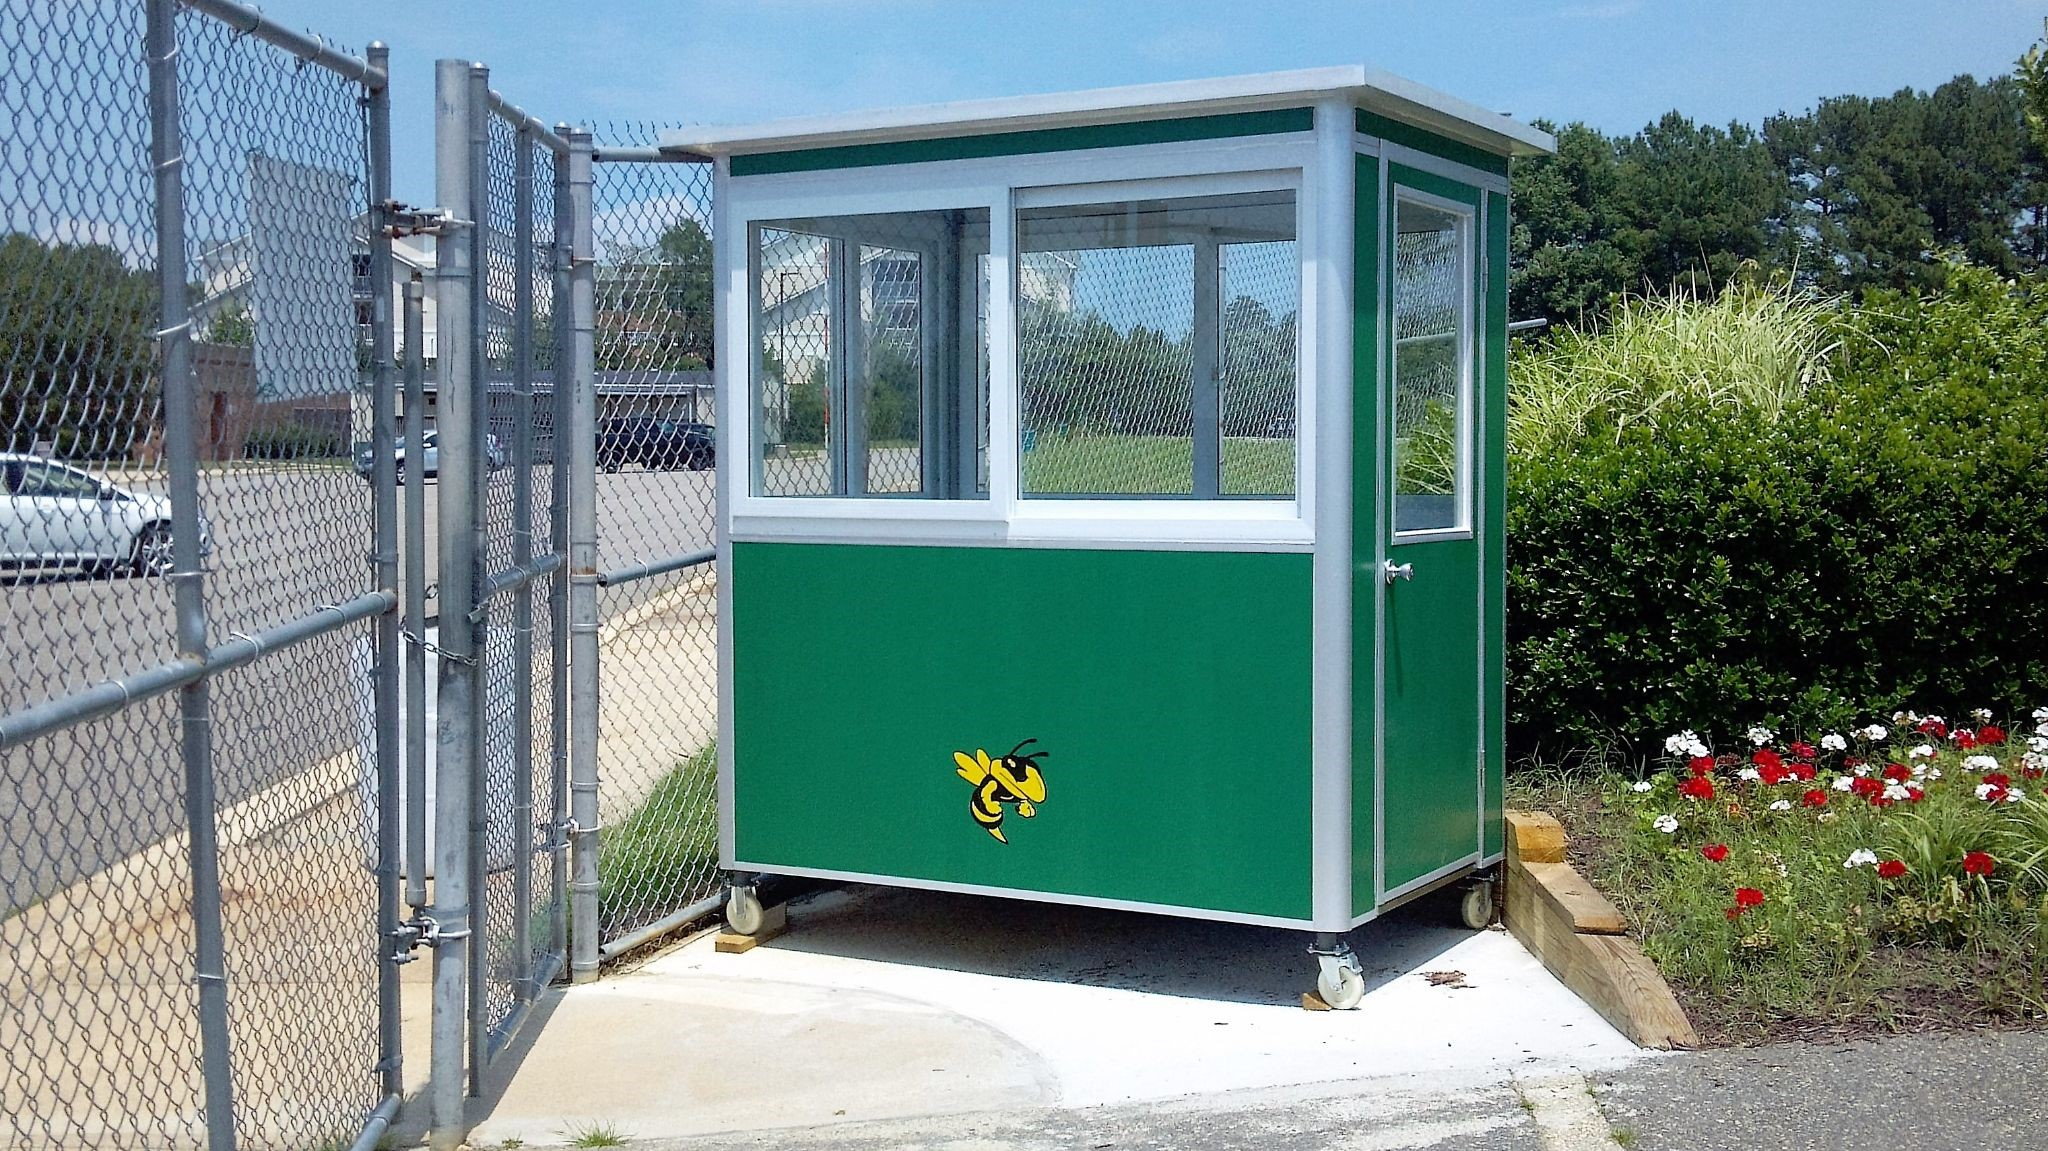 secured dispatch booth